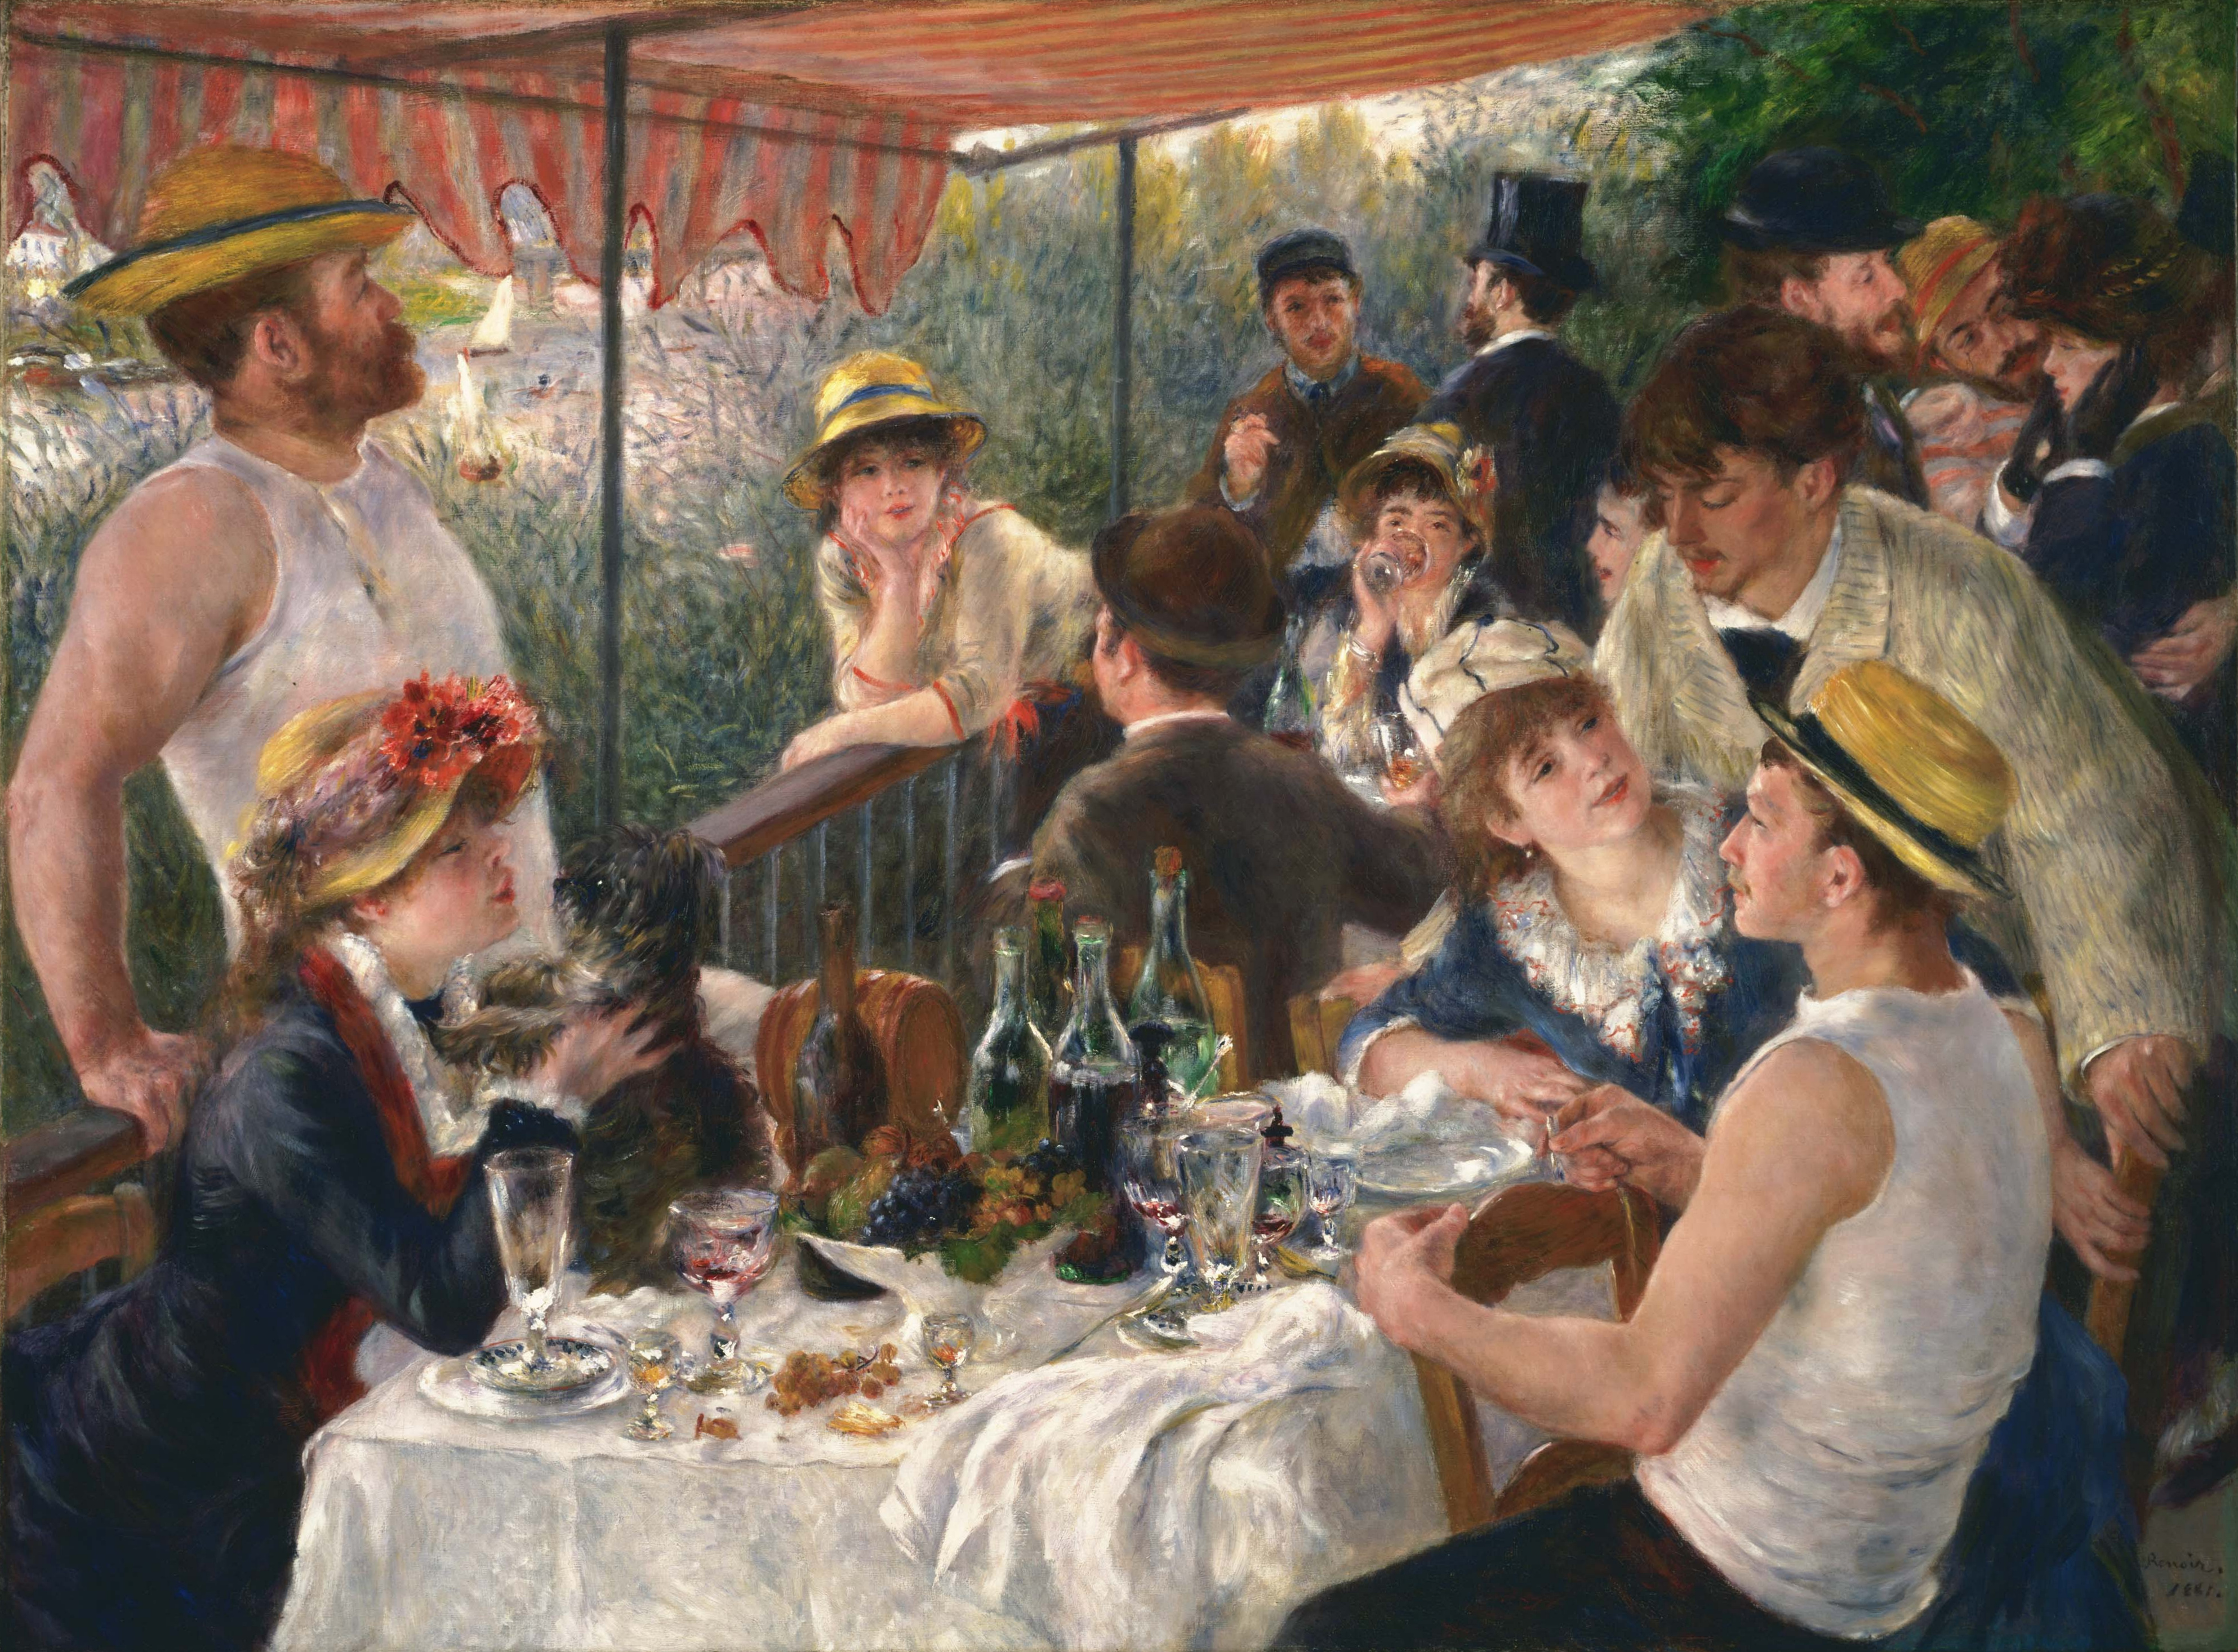 Pierre-Auguste_Renoir_-_Luncheon_of_the_Boating_Party_-_Google_Art_Project.jpg